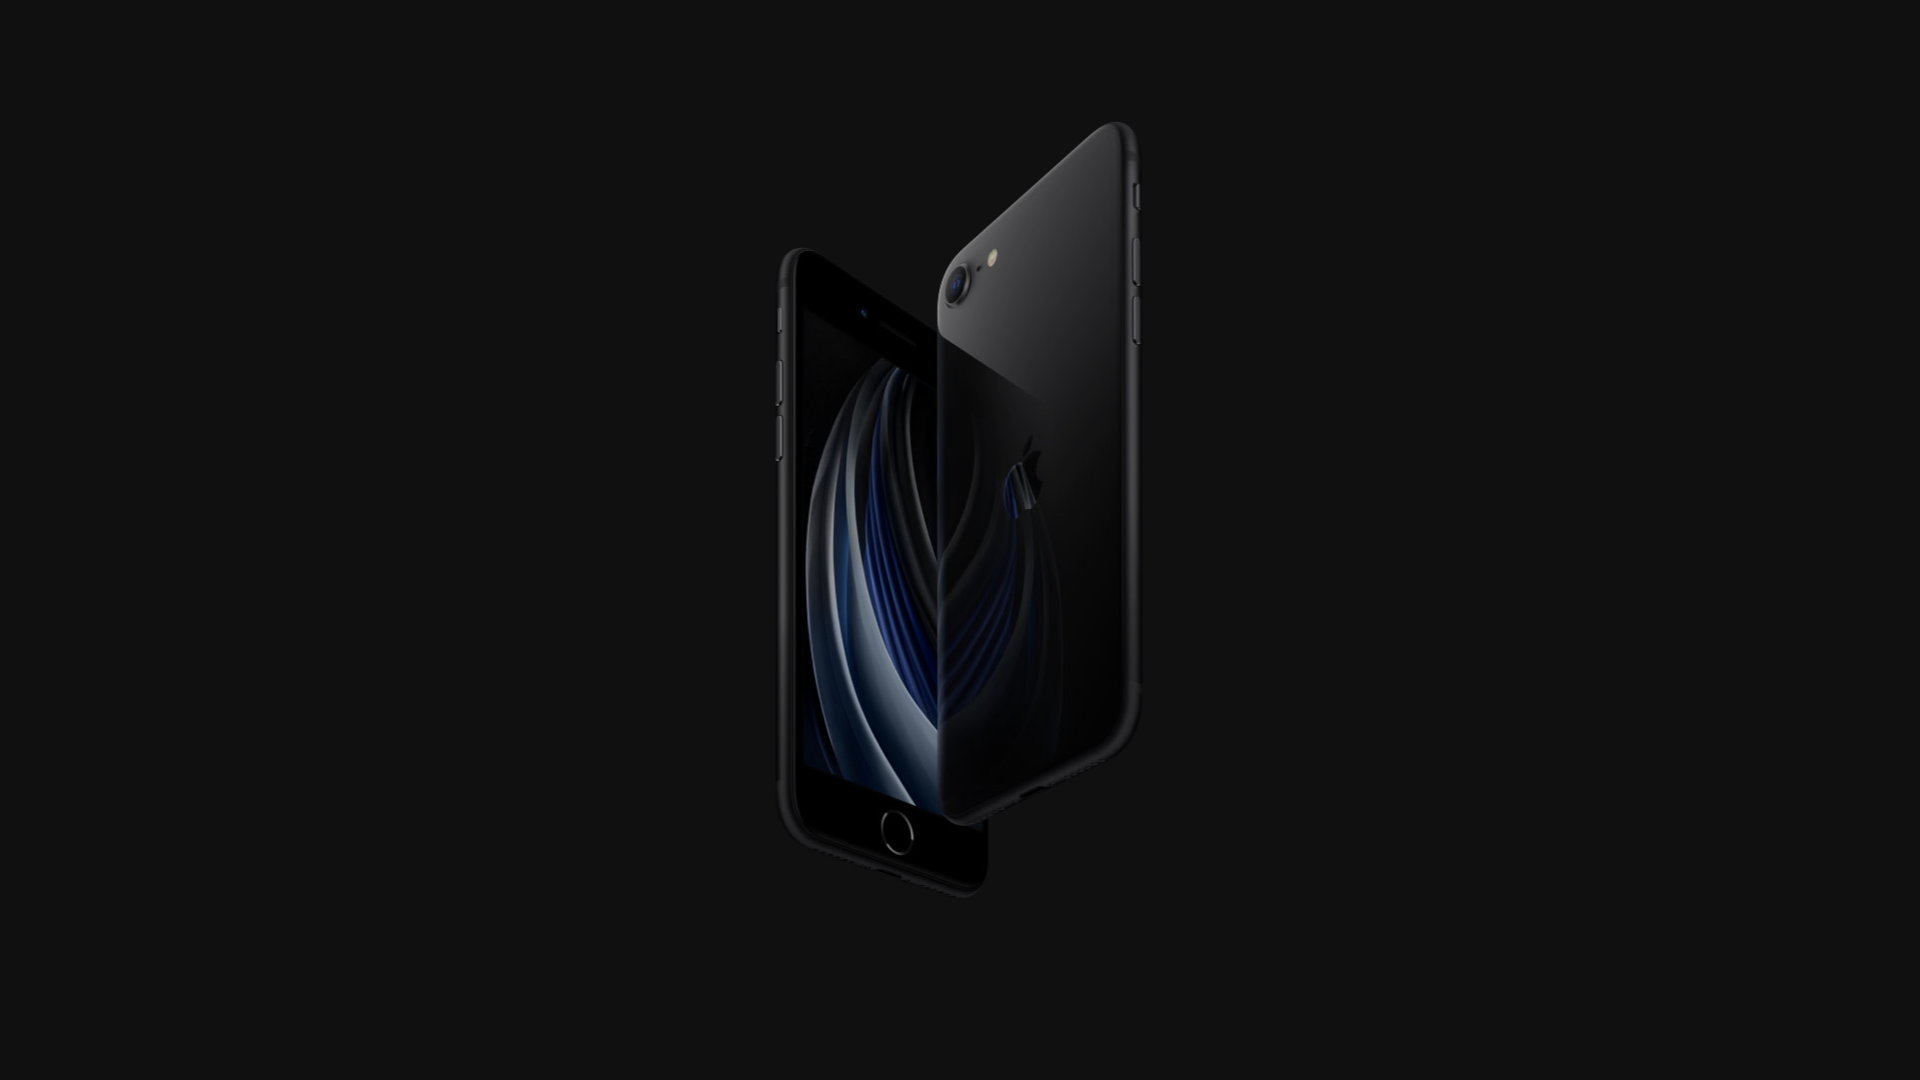 A black iPhone SE on a black background